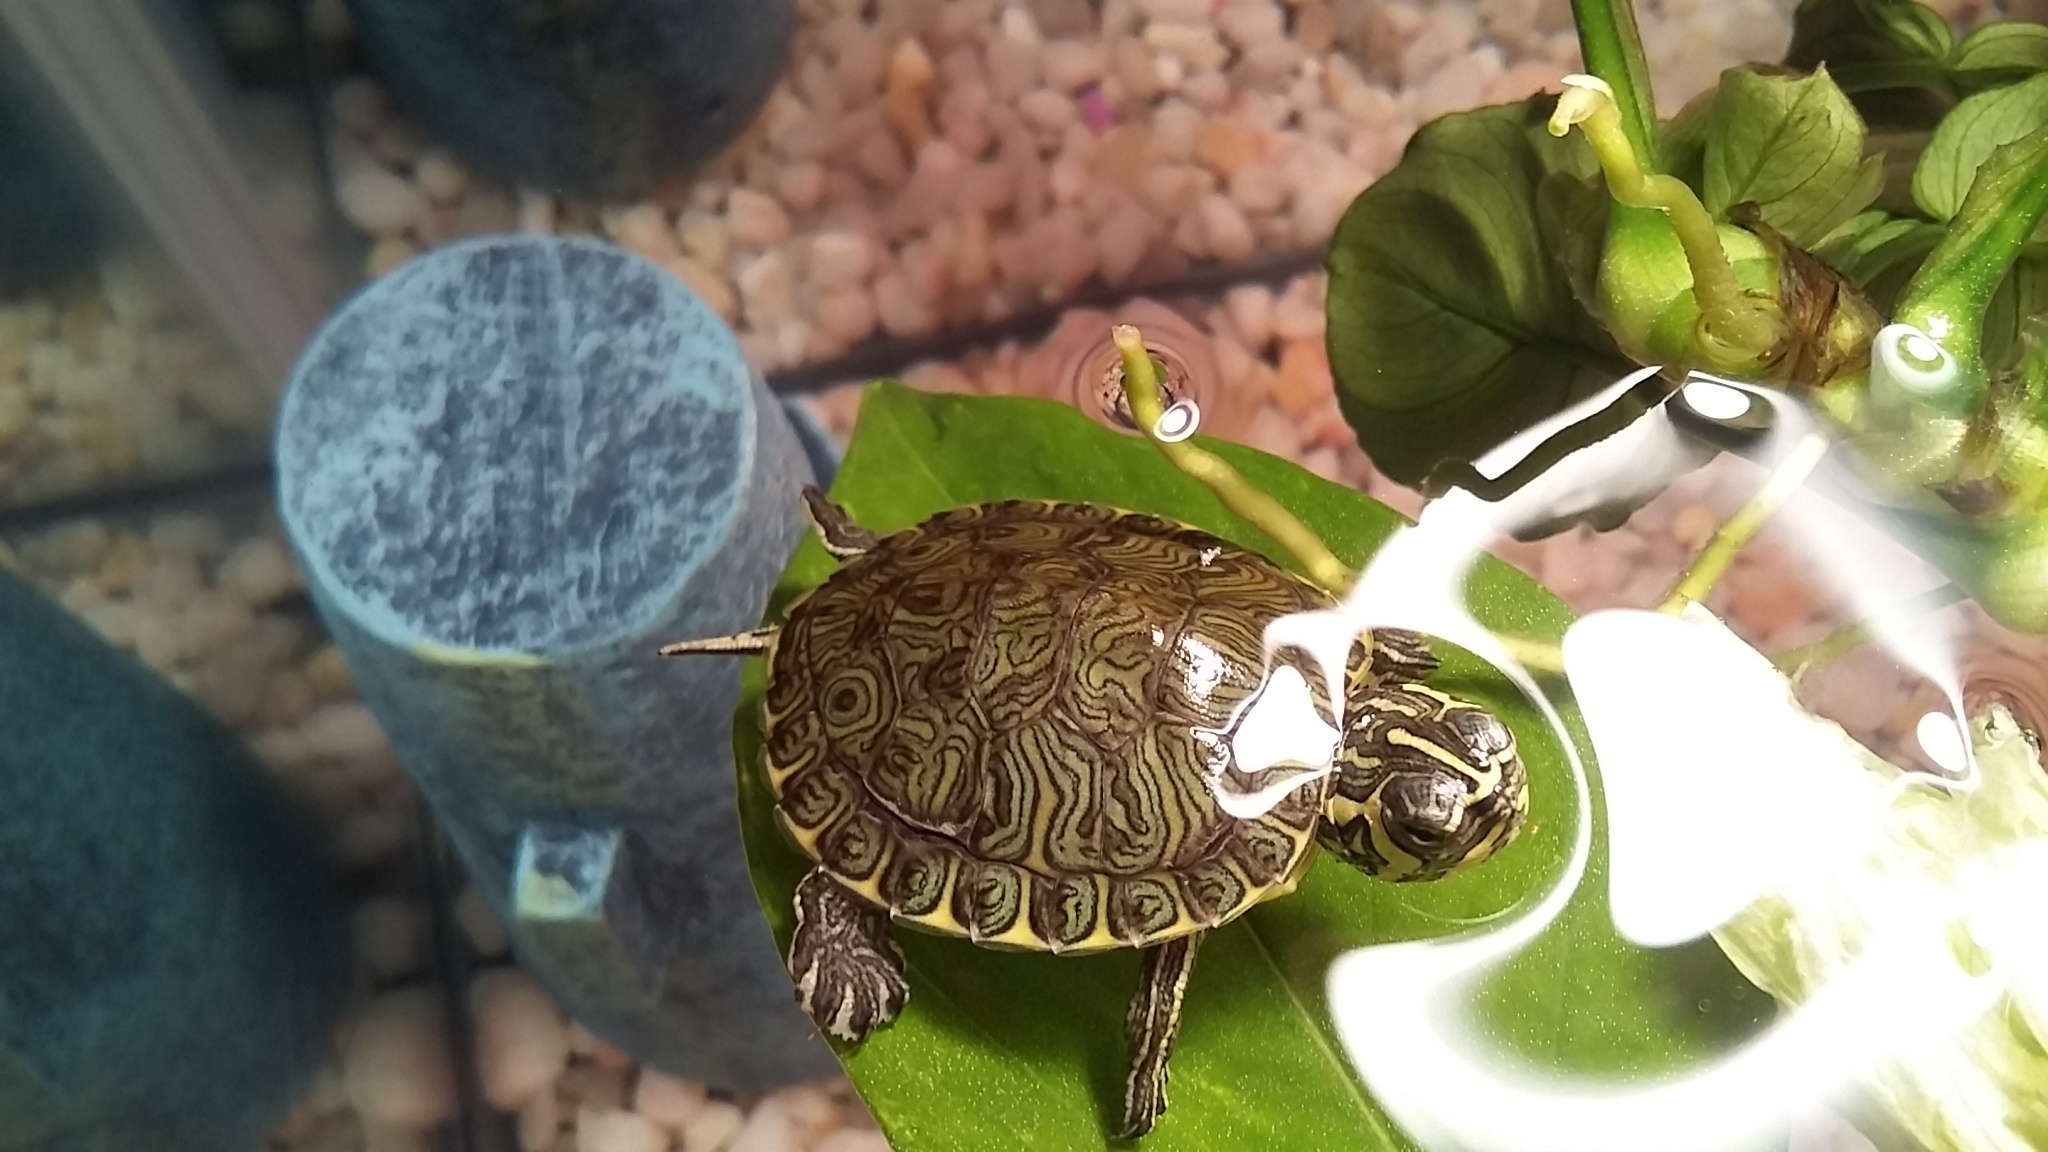 Yellow Belly Slider Turtles, the expense